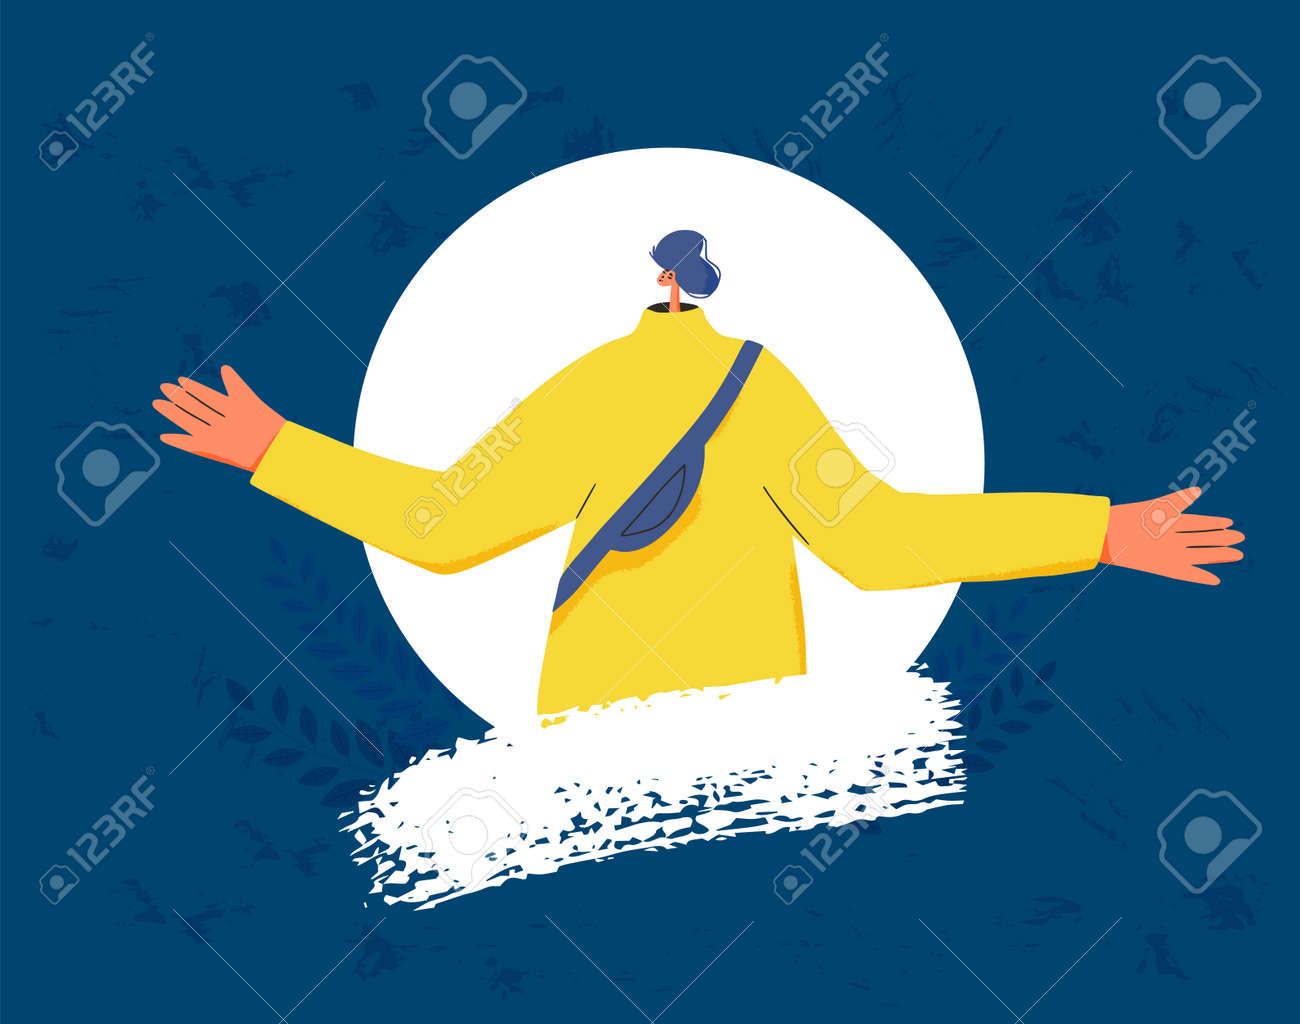 Pensive man icon. Person in doubt. Teenager frustrated by current situation. Male character thinking about problems. Vector flat illustration. - 168652660